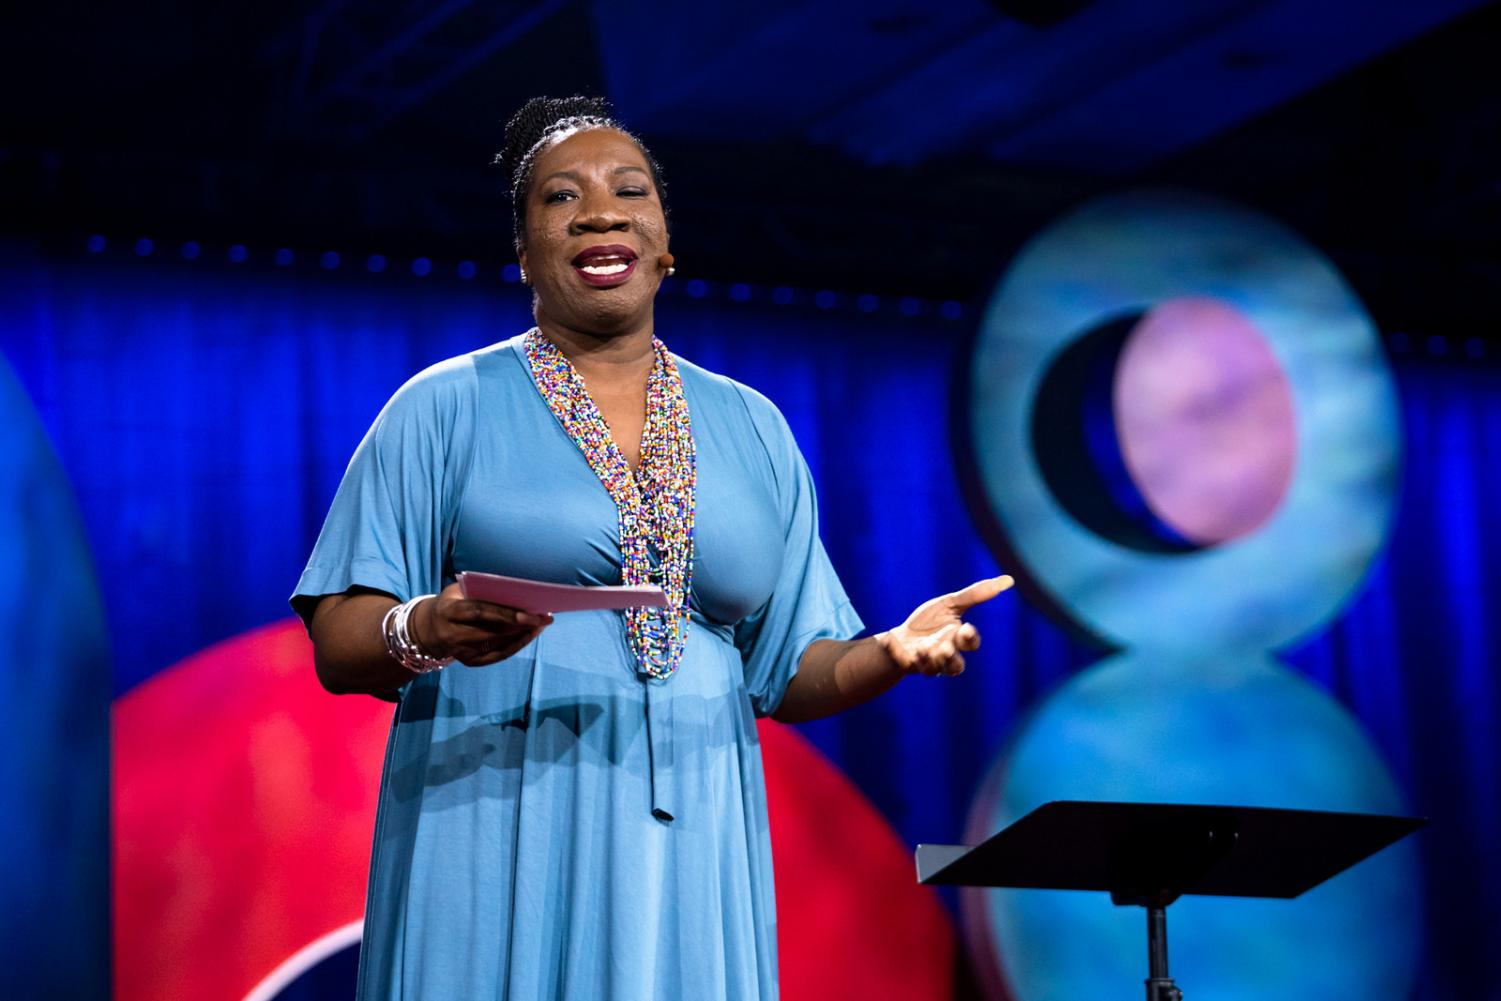 Tarana Burke speaks at the TedWomen 2018: Showing Up conference in Palm Springs, California on Nov. 30, 2018. Burke will speak at Sac State on Feb. 7 in the University Union.